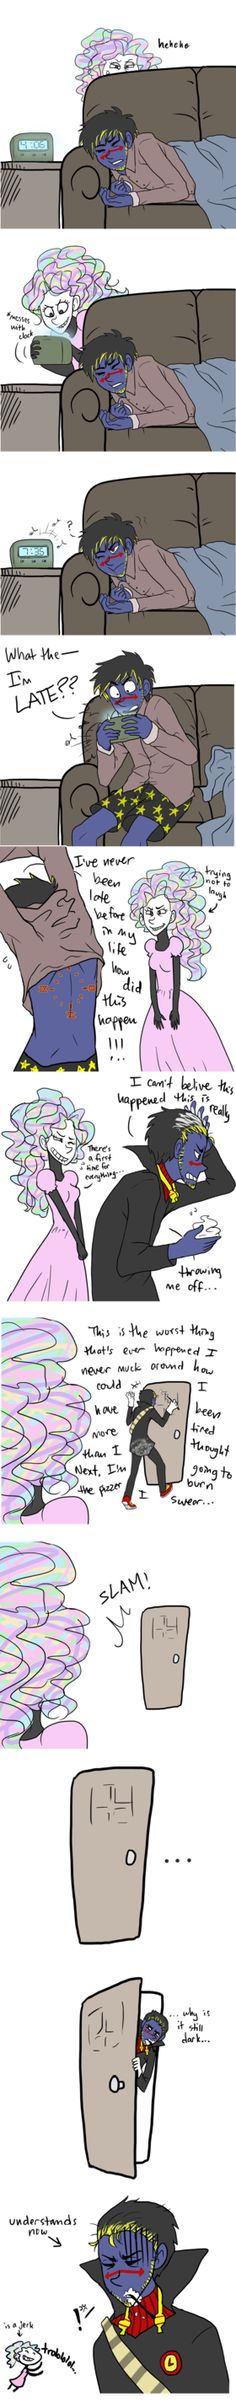 Her Favorite Prank by NEOmi-triX on DeviantArt